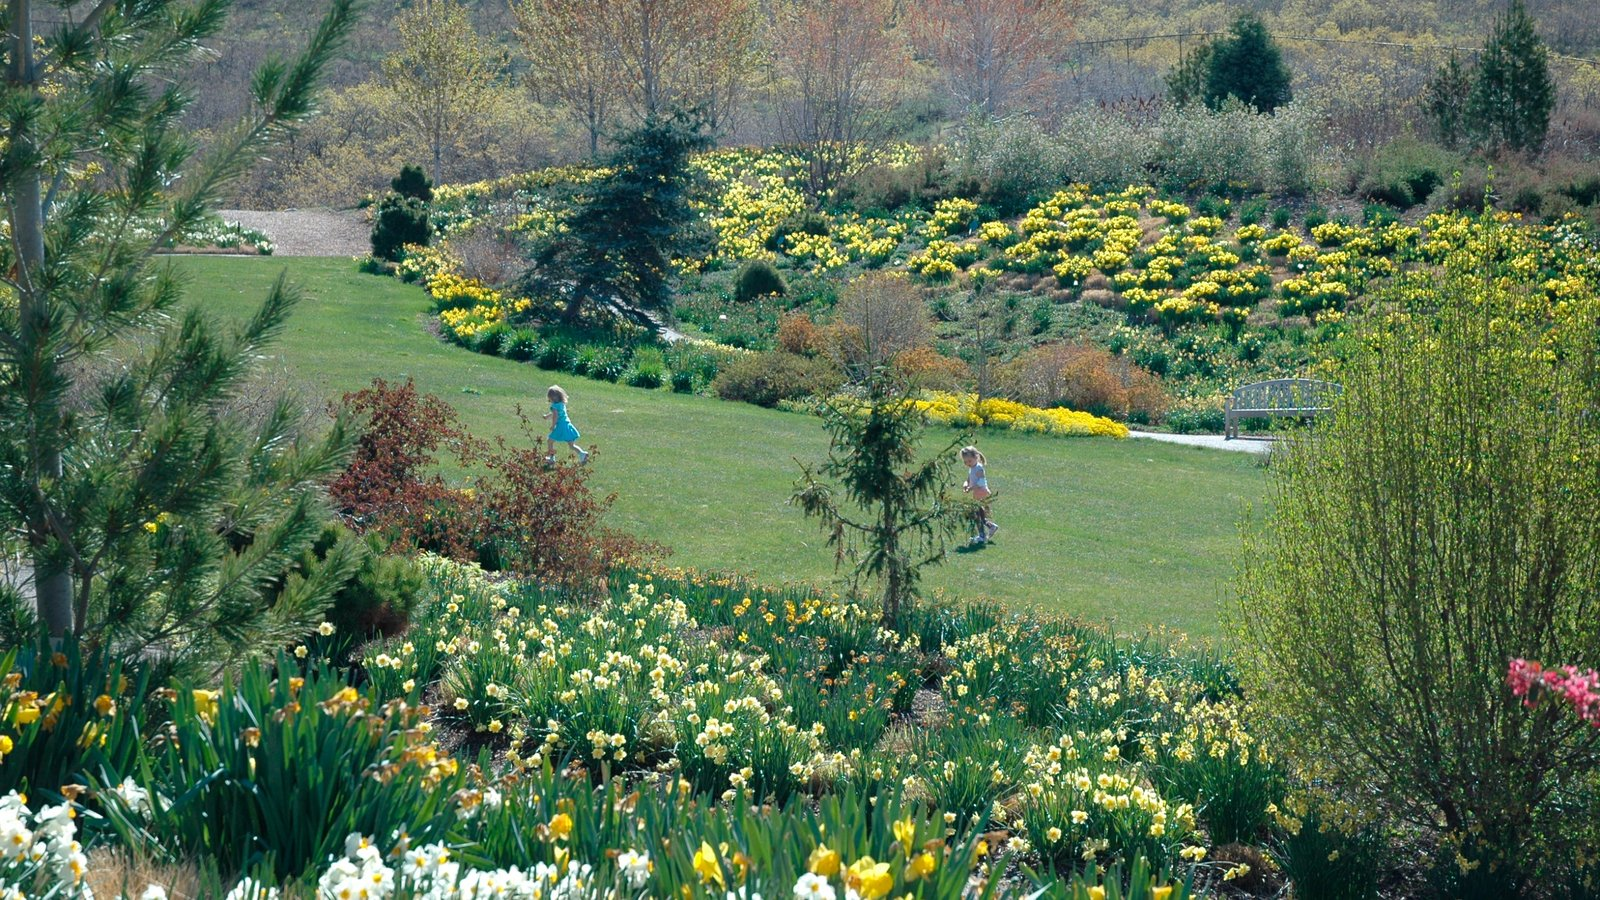 Red Butte Garden and Arboreteum showing flowers, landscape views and wildflowers